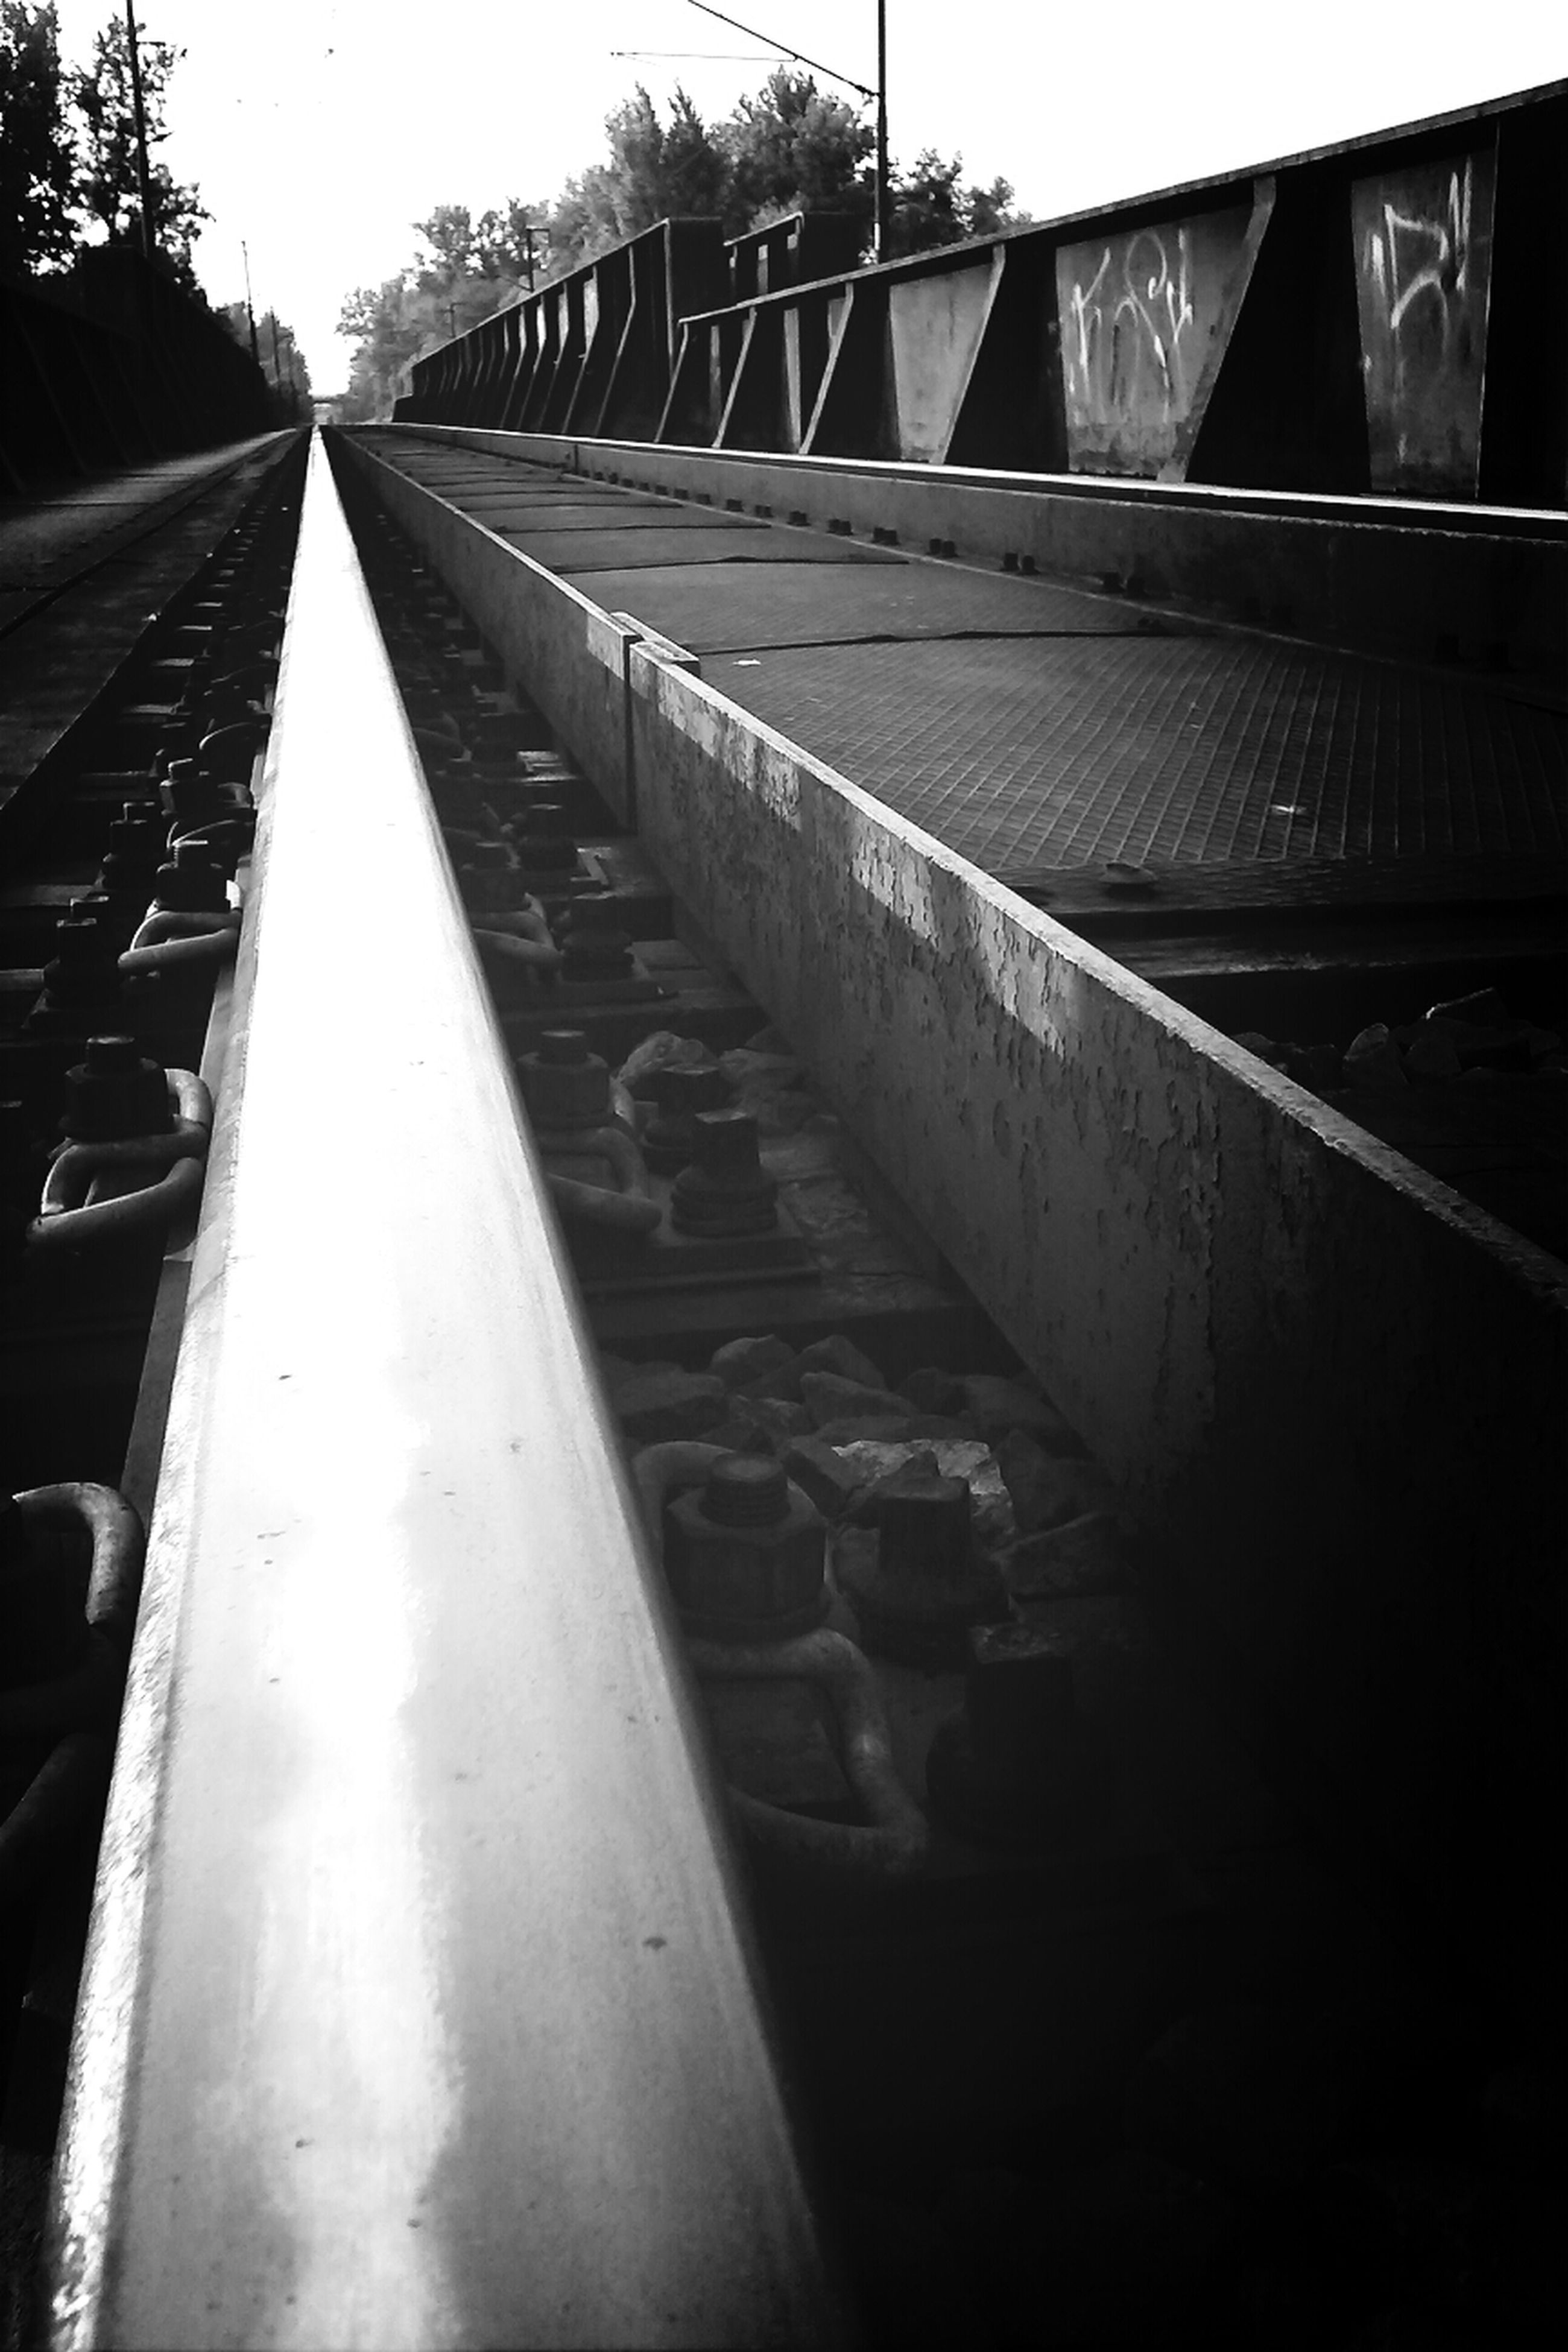 transportation, diminishing perspective, the way forward, vanishing point, built structure, architecture, connection, metal, railroad track, sky, bridge - man made structure, outdoors, rail transportation, engineering, day, no people, travel, long, building exterior, metallic